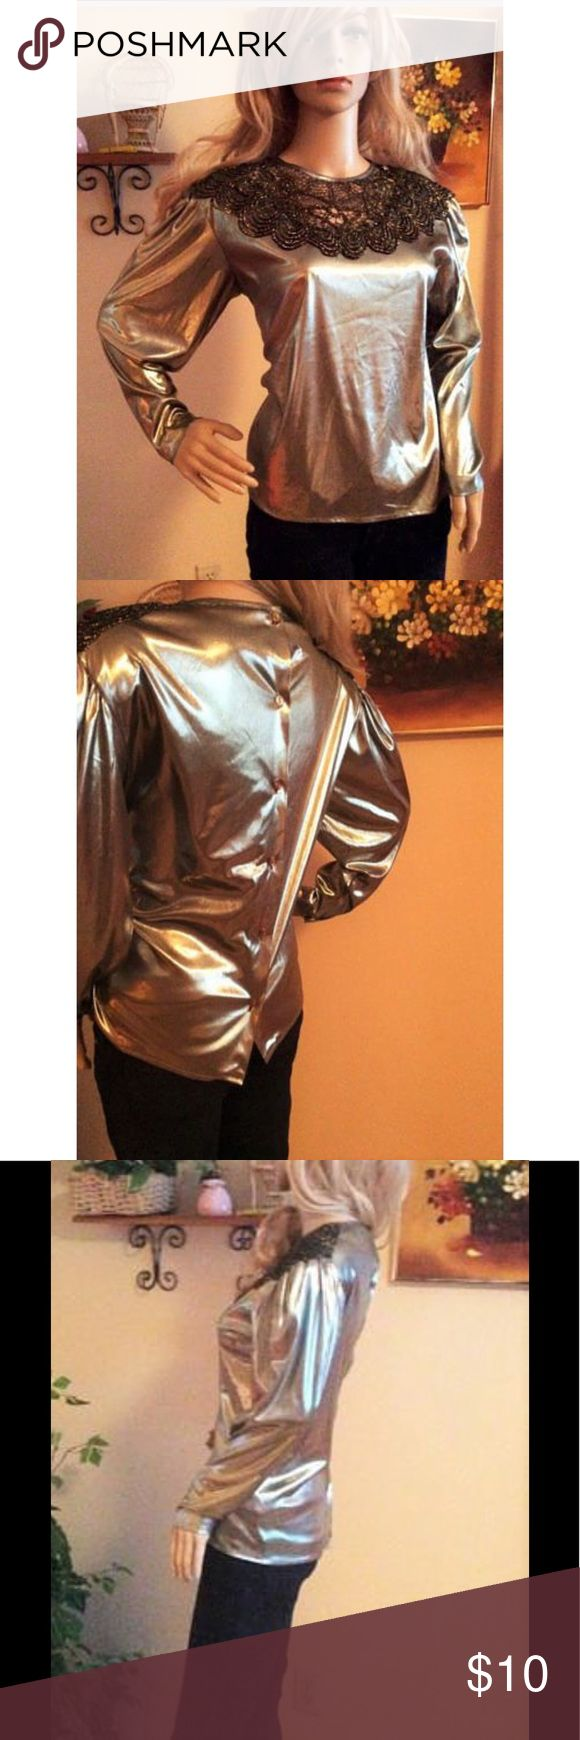 """Petite Sophisticate Metallic Vintage 80's Blouse This silver metallic blouse is sure to make a statement!  This vintage 1980's blouse is made of a soft foil fabric; it also has long sleeves, and buttons in the back. The neckline is made of black and gold knit material.  The size is 4; the measurements (lying flat) are: Length: 21.5"""" Bust: 20""""  The blouse has light shoulder padding, and is made of 100% polyester; the material stretches.  Used; Excellent Condition Petite Sophisticate Tops…"""